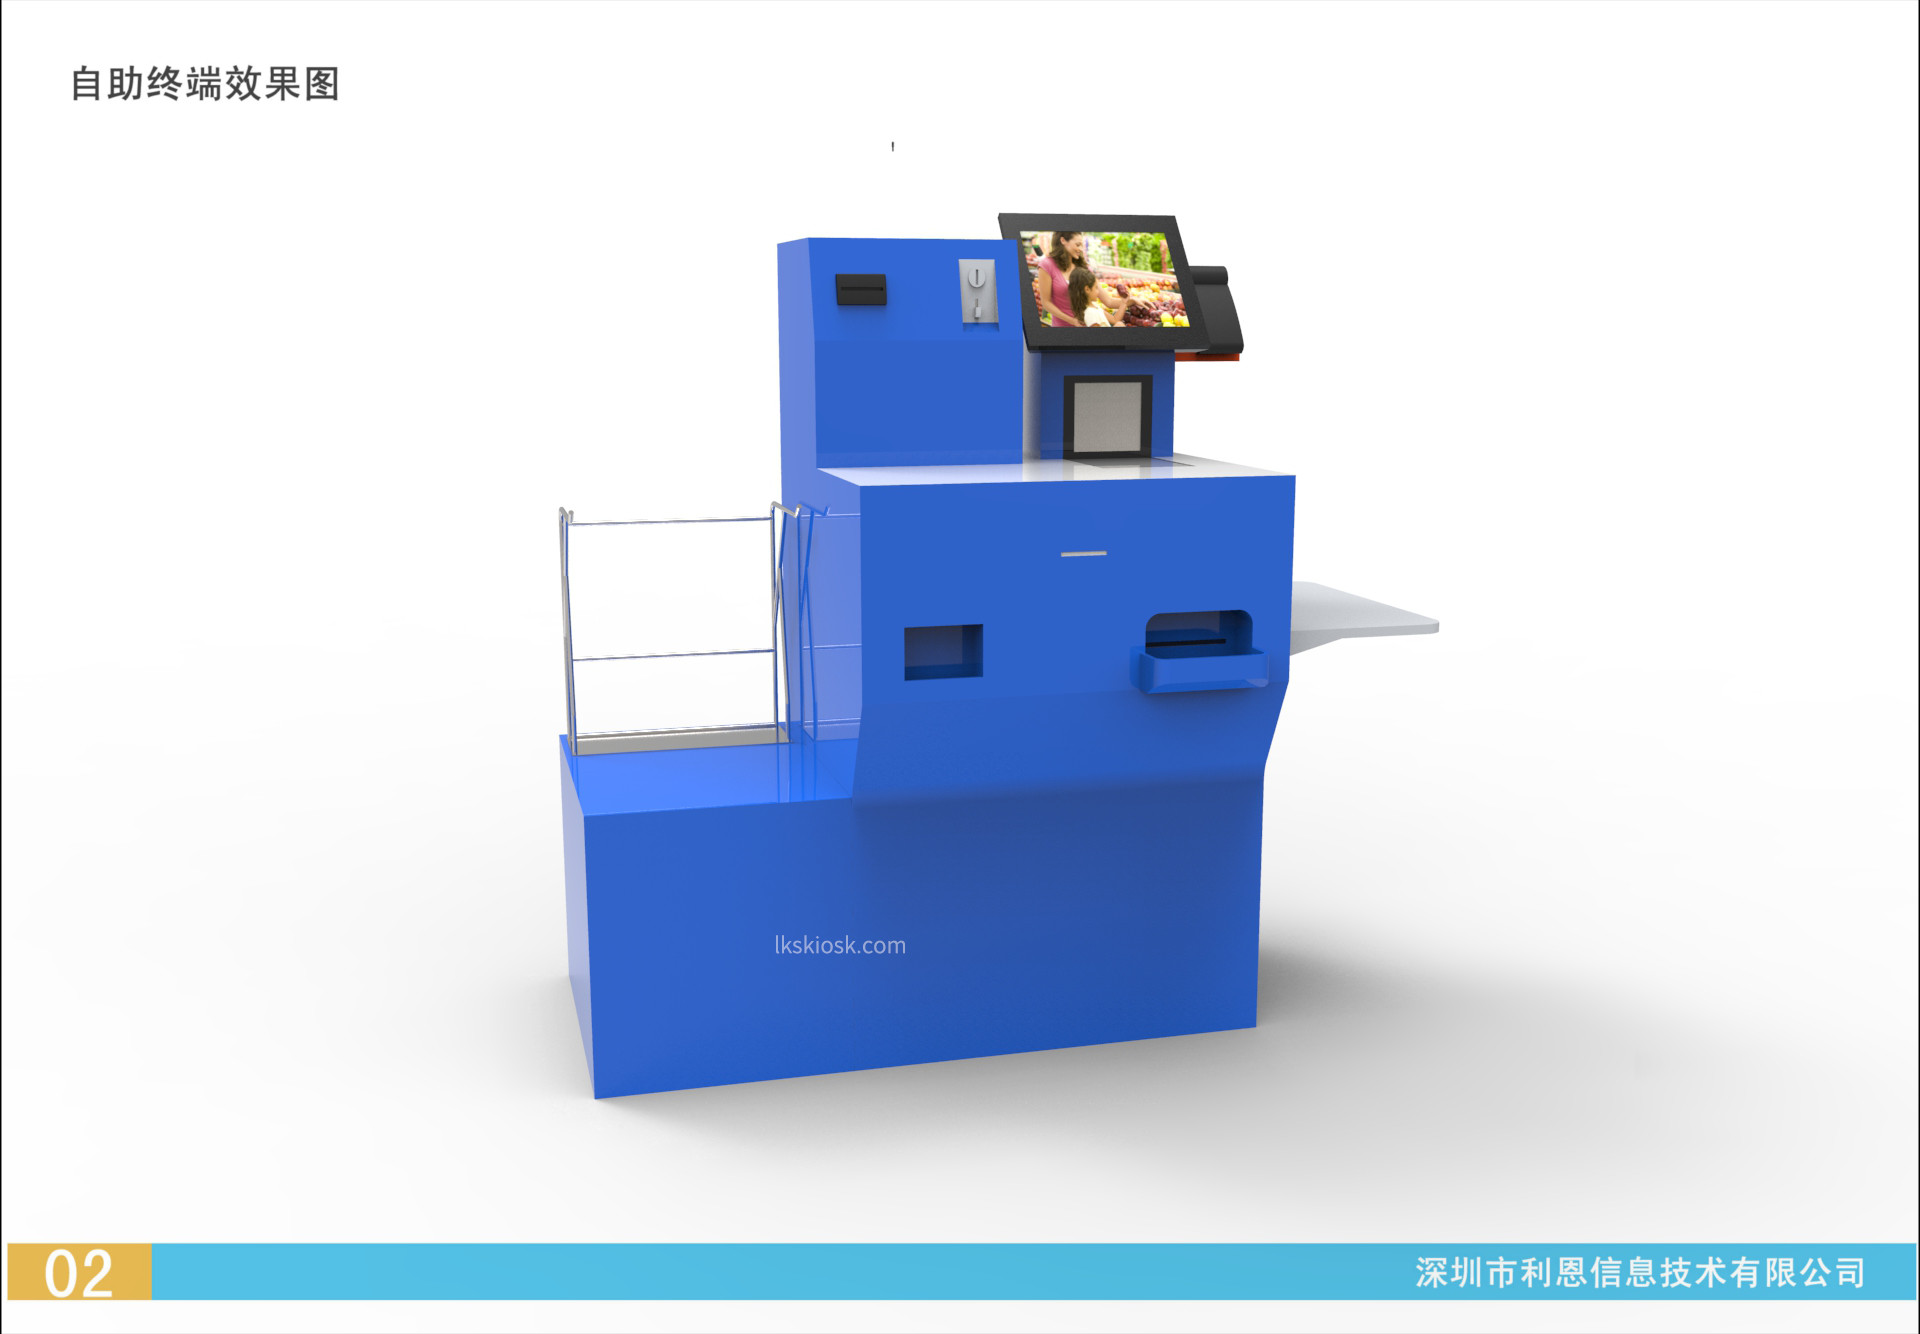 Cash Dispenser Self Checkout Kiosk Powder Coat Painting For Unattended Store / Suppermarket